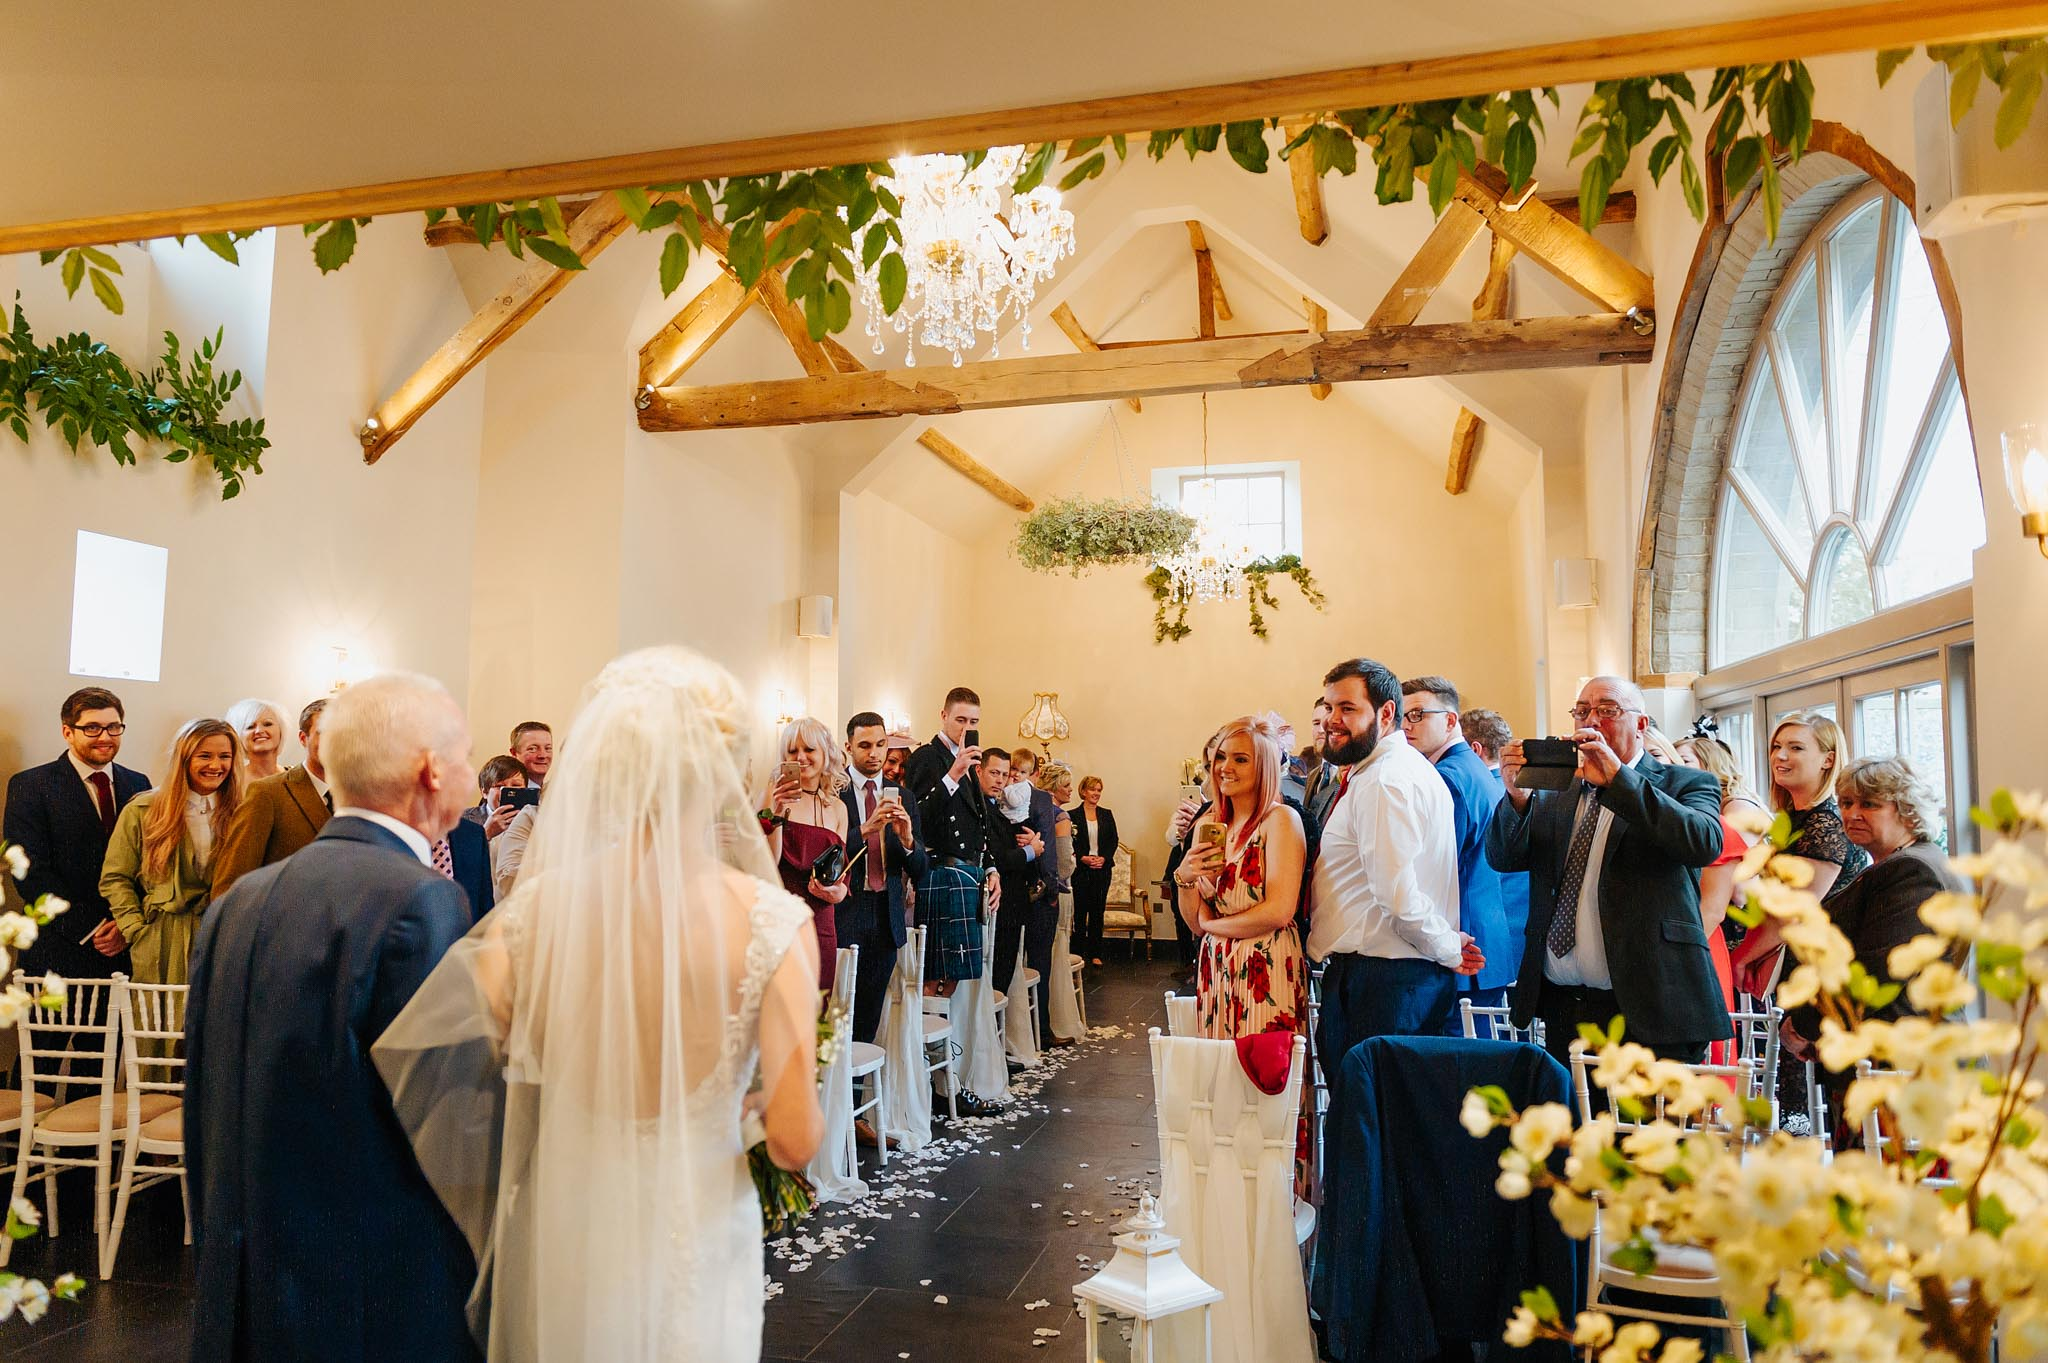 lemore manor wedding herefordshire 40 - Lemore Manor wedding, Herefordshire - West Midlands | Sadie + Ken